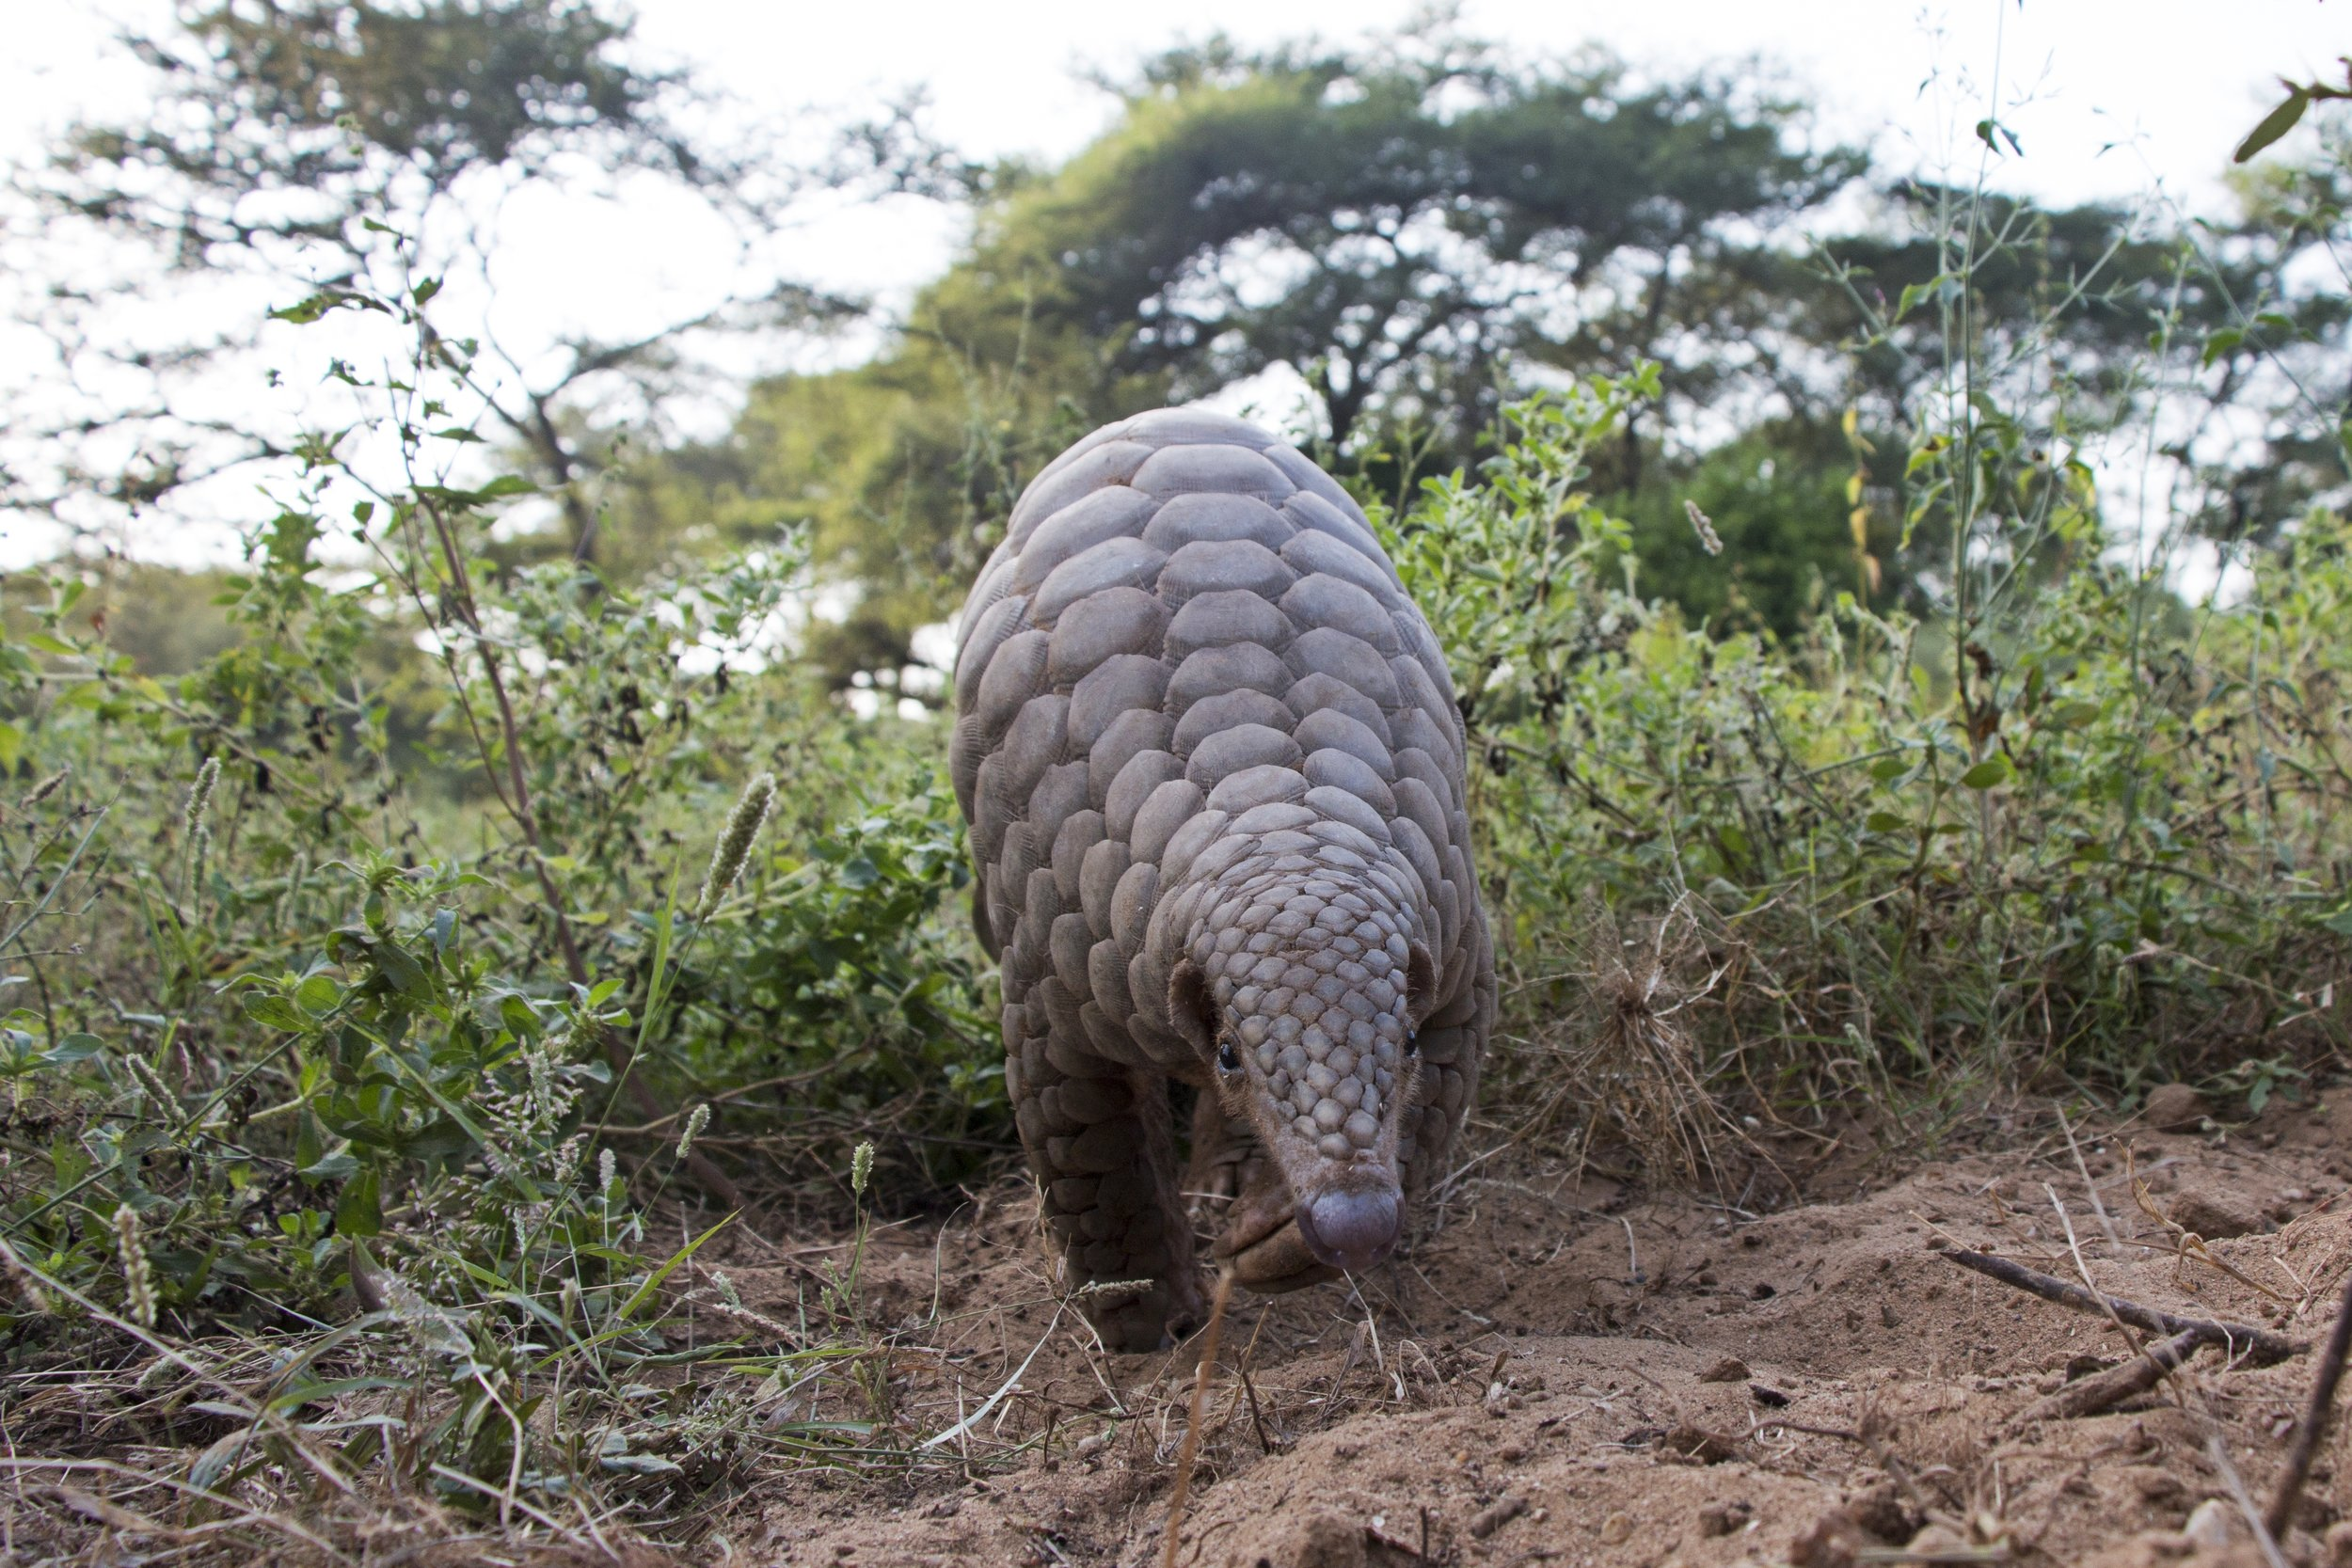 Pangolins are the most trafficked wild mammals in the world. But it is not too late to save them from extinction. -